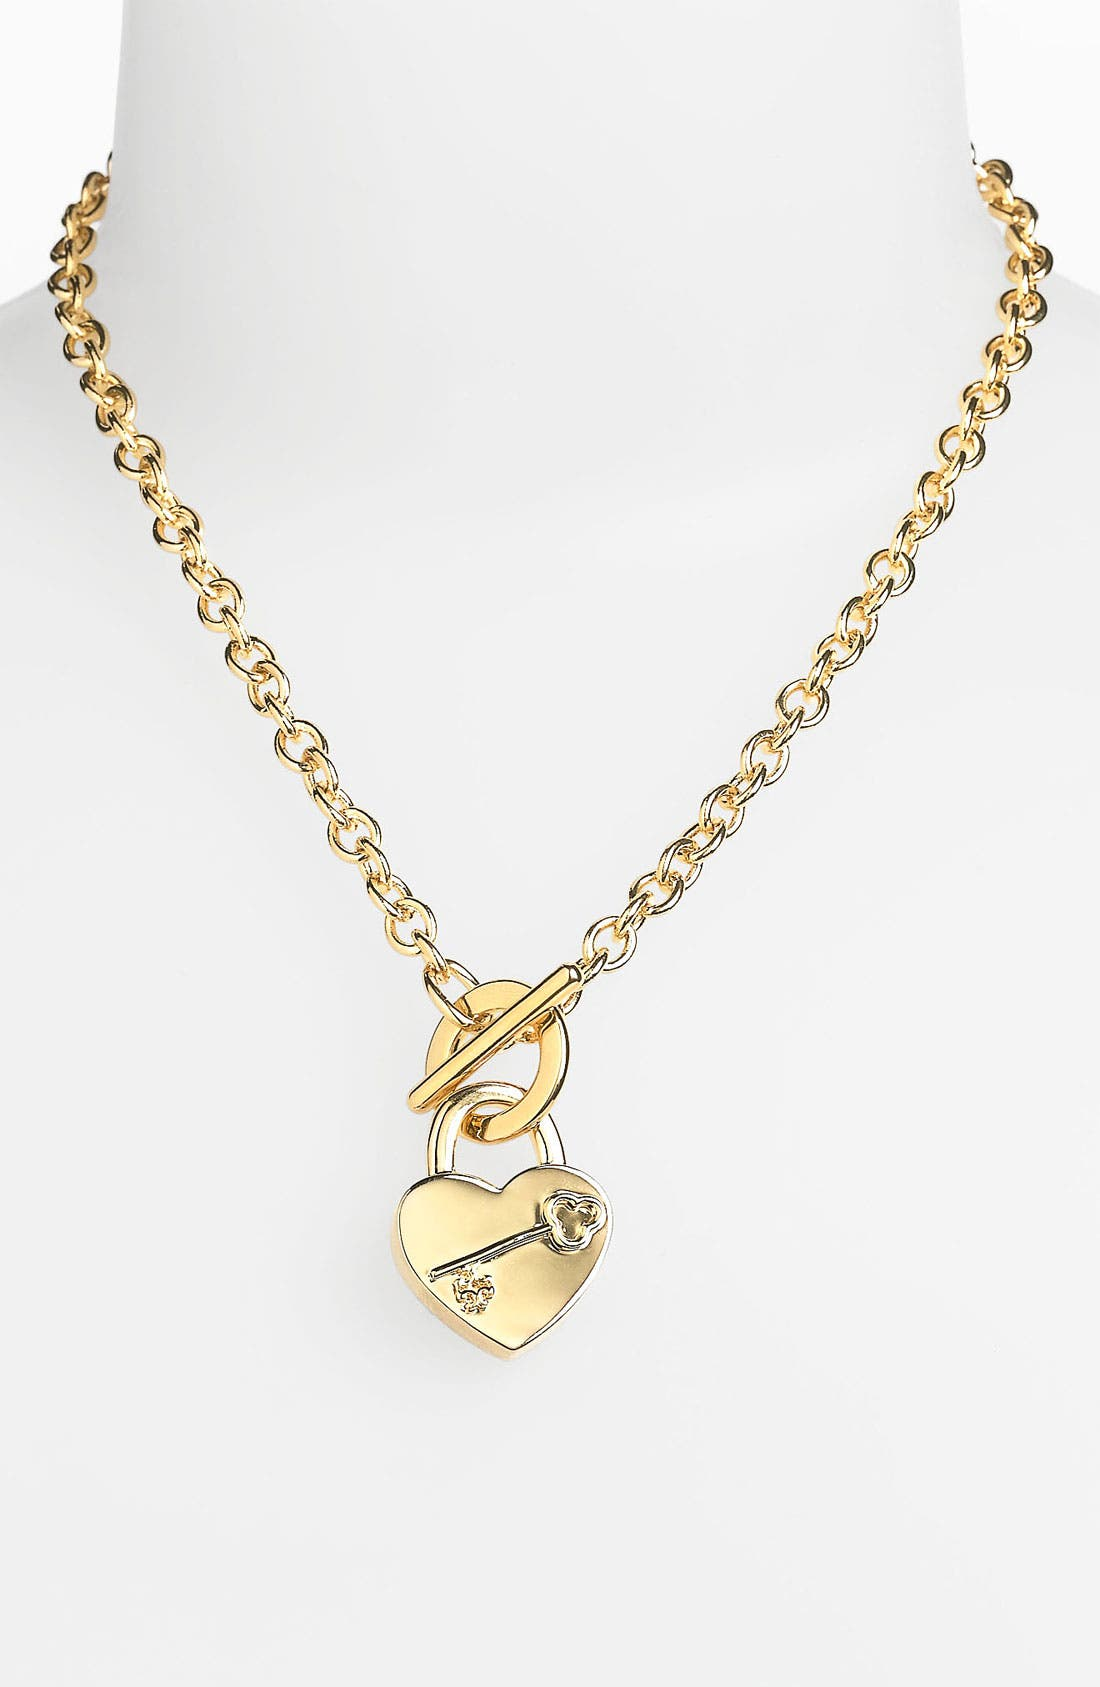 Main Image - Tory Burch 'Louise' Heart Charm Necklace